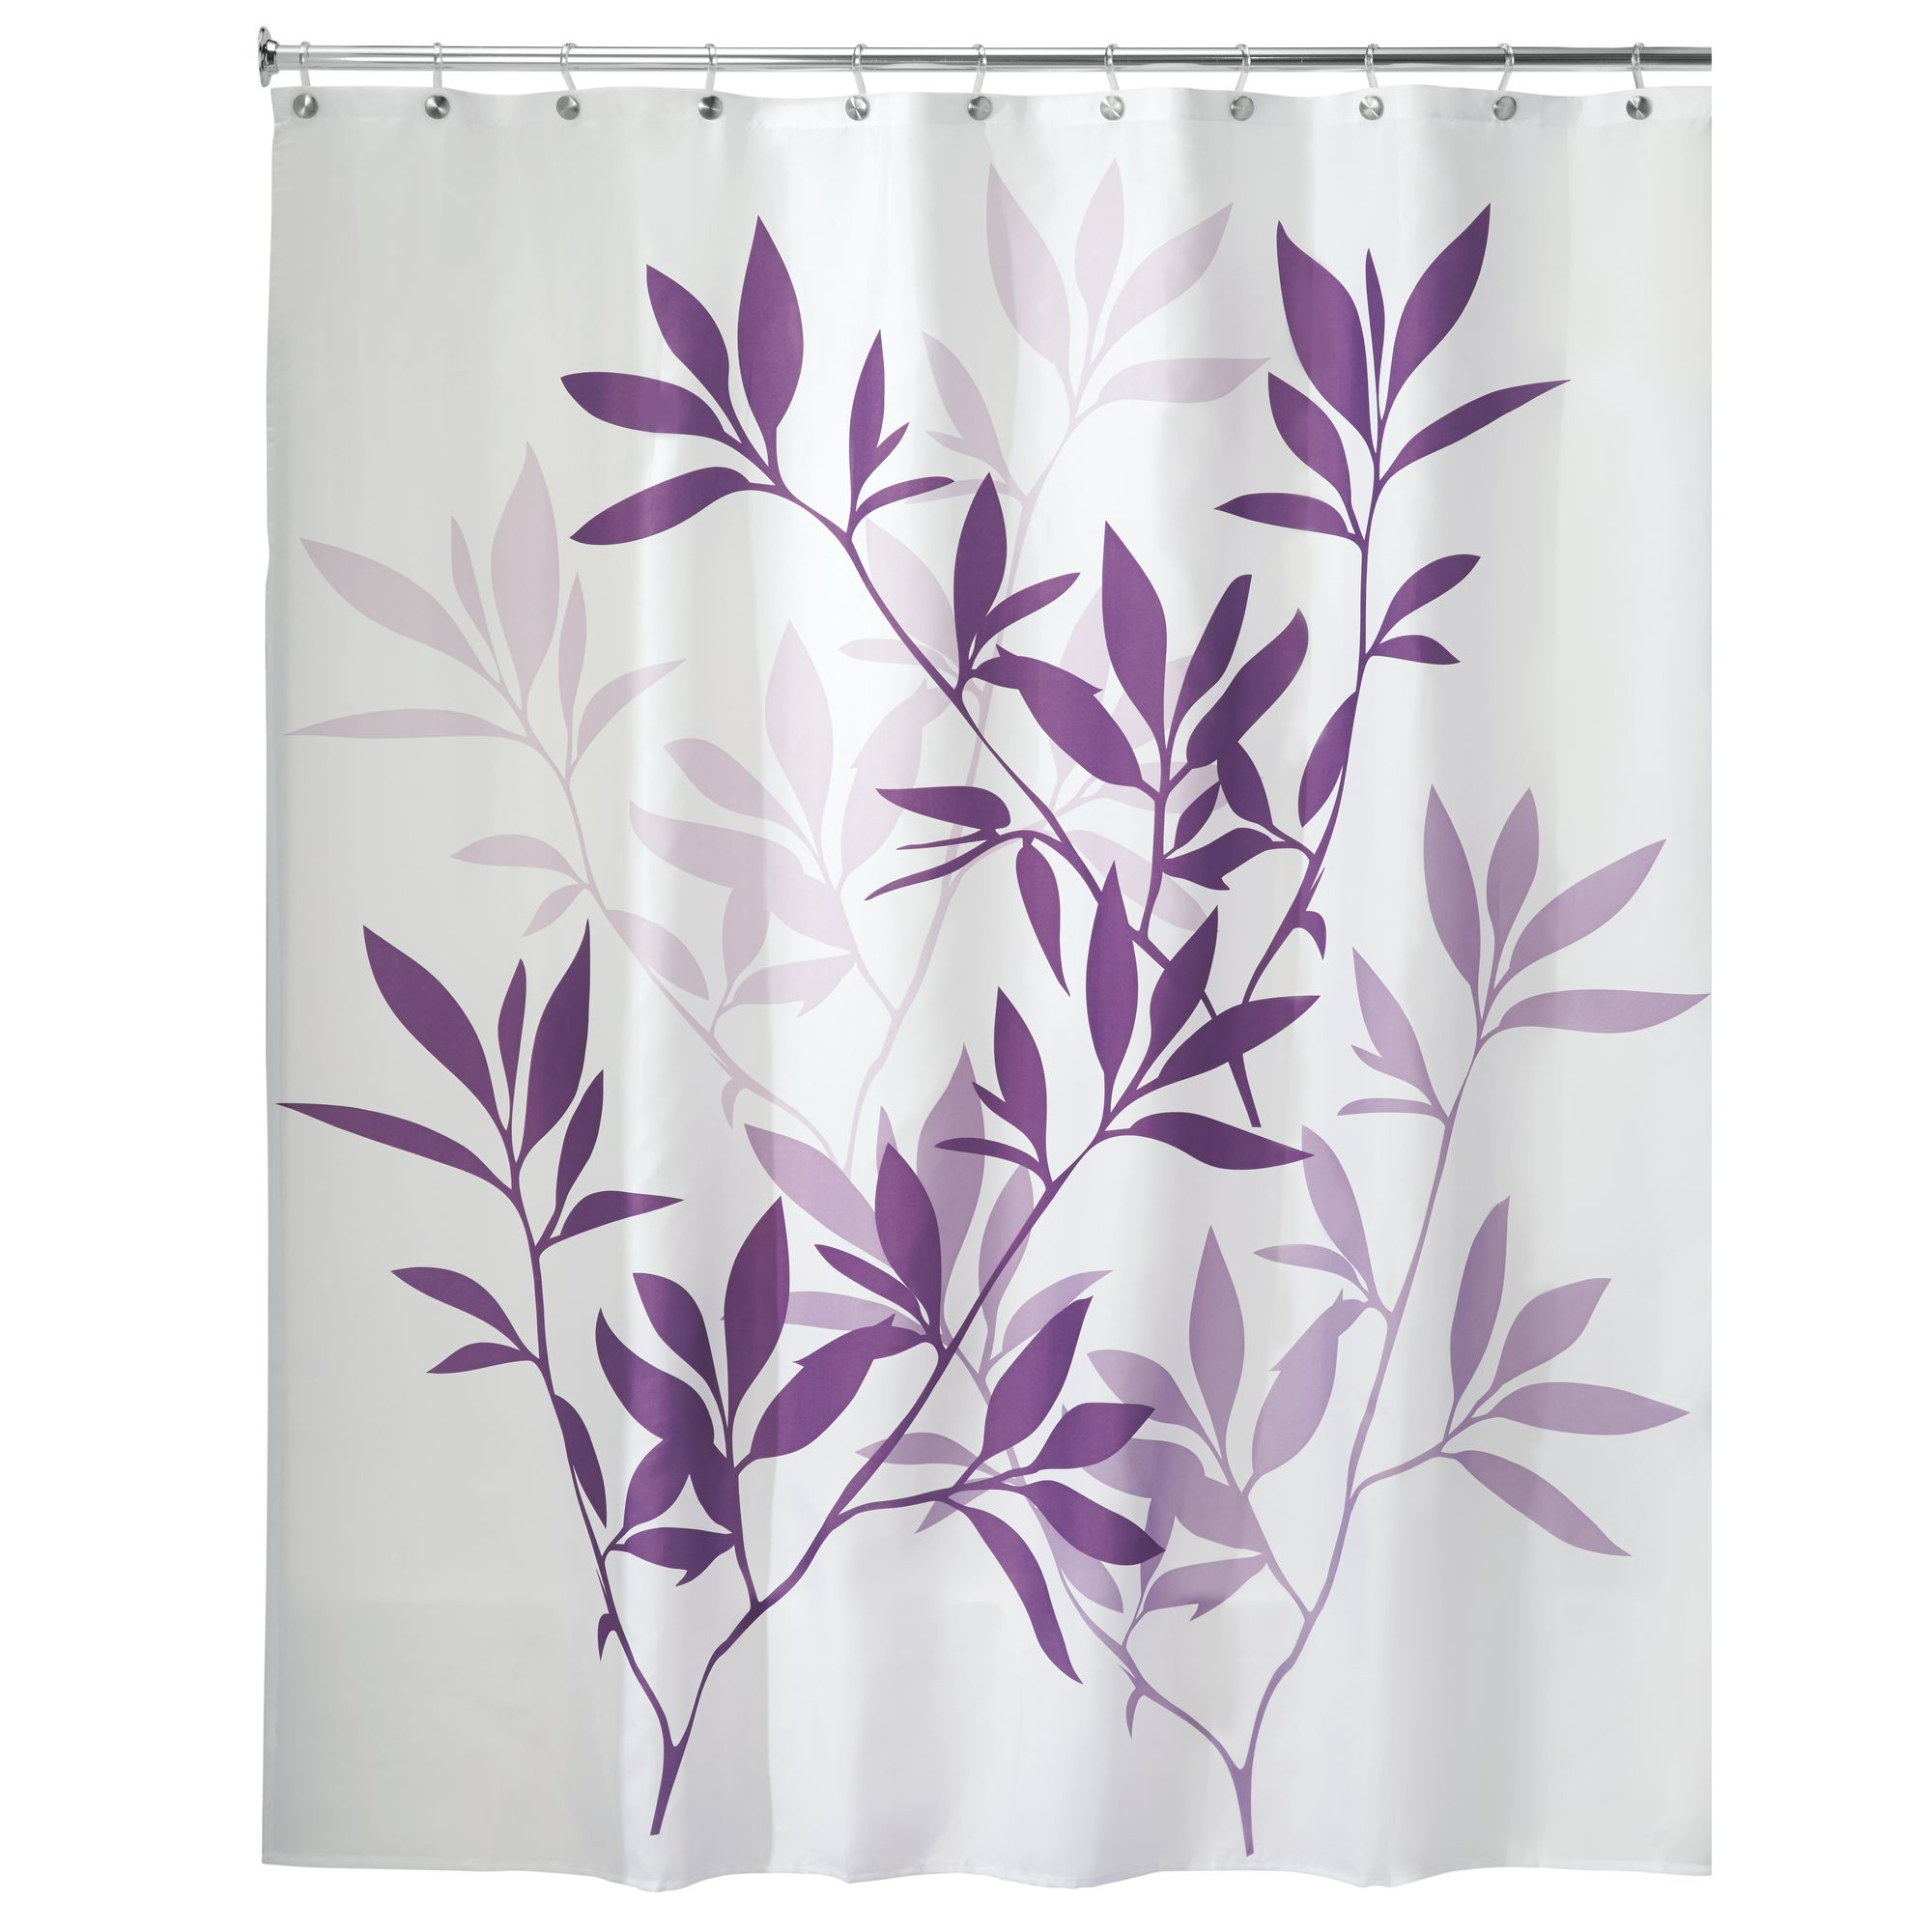 InterDesign Leaves Fabric Shower Curtain, Various Sizes & Colors